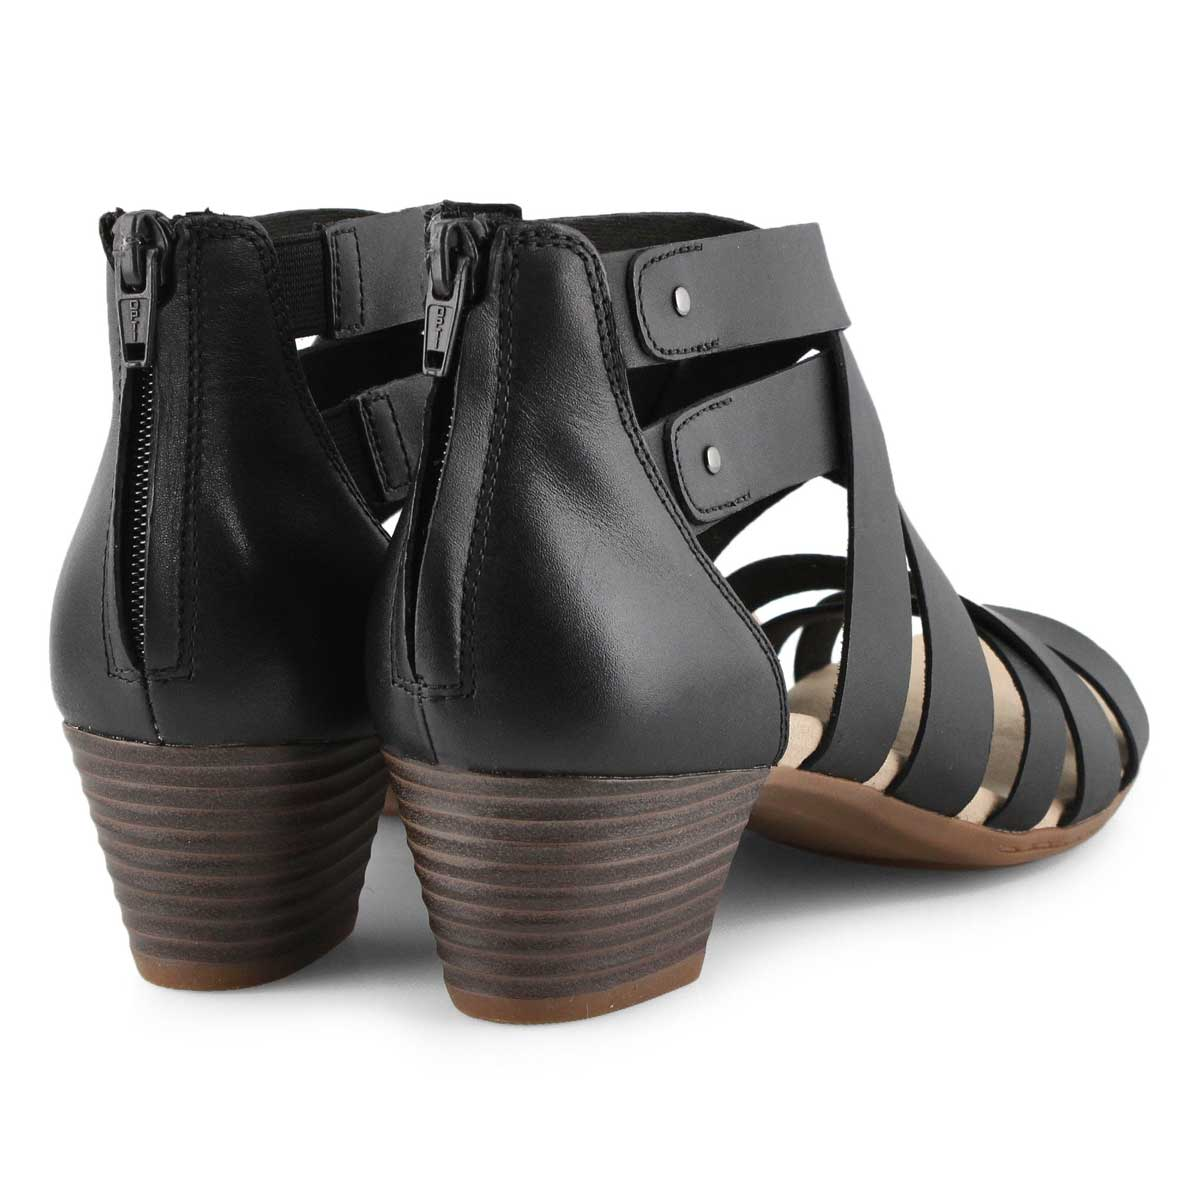 Lds Valarie Dream black dress sandals